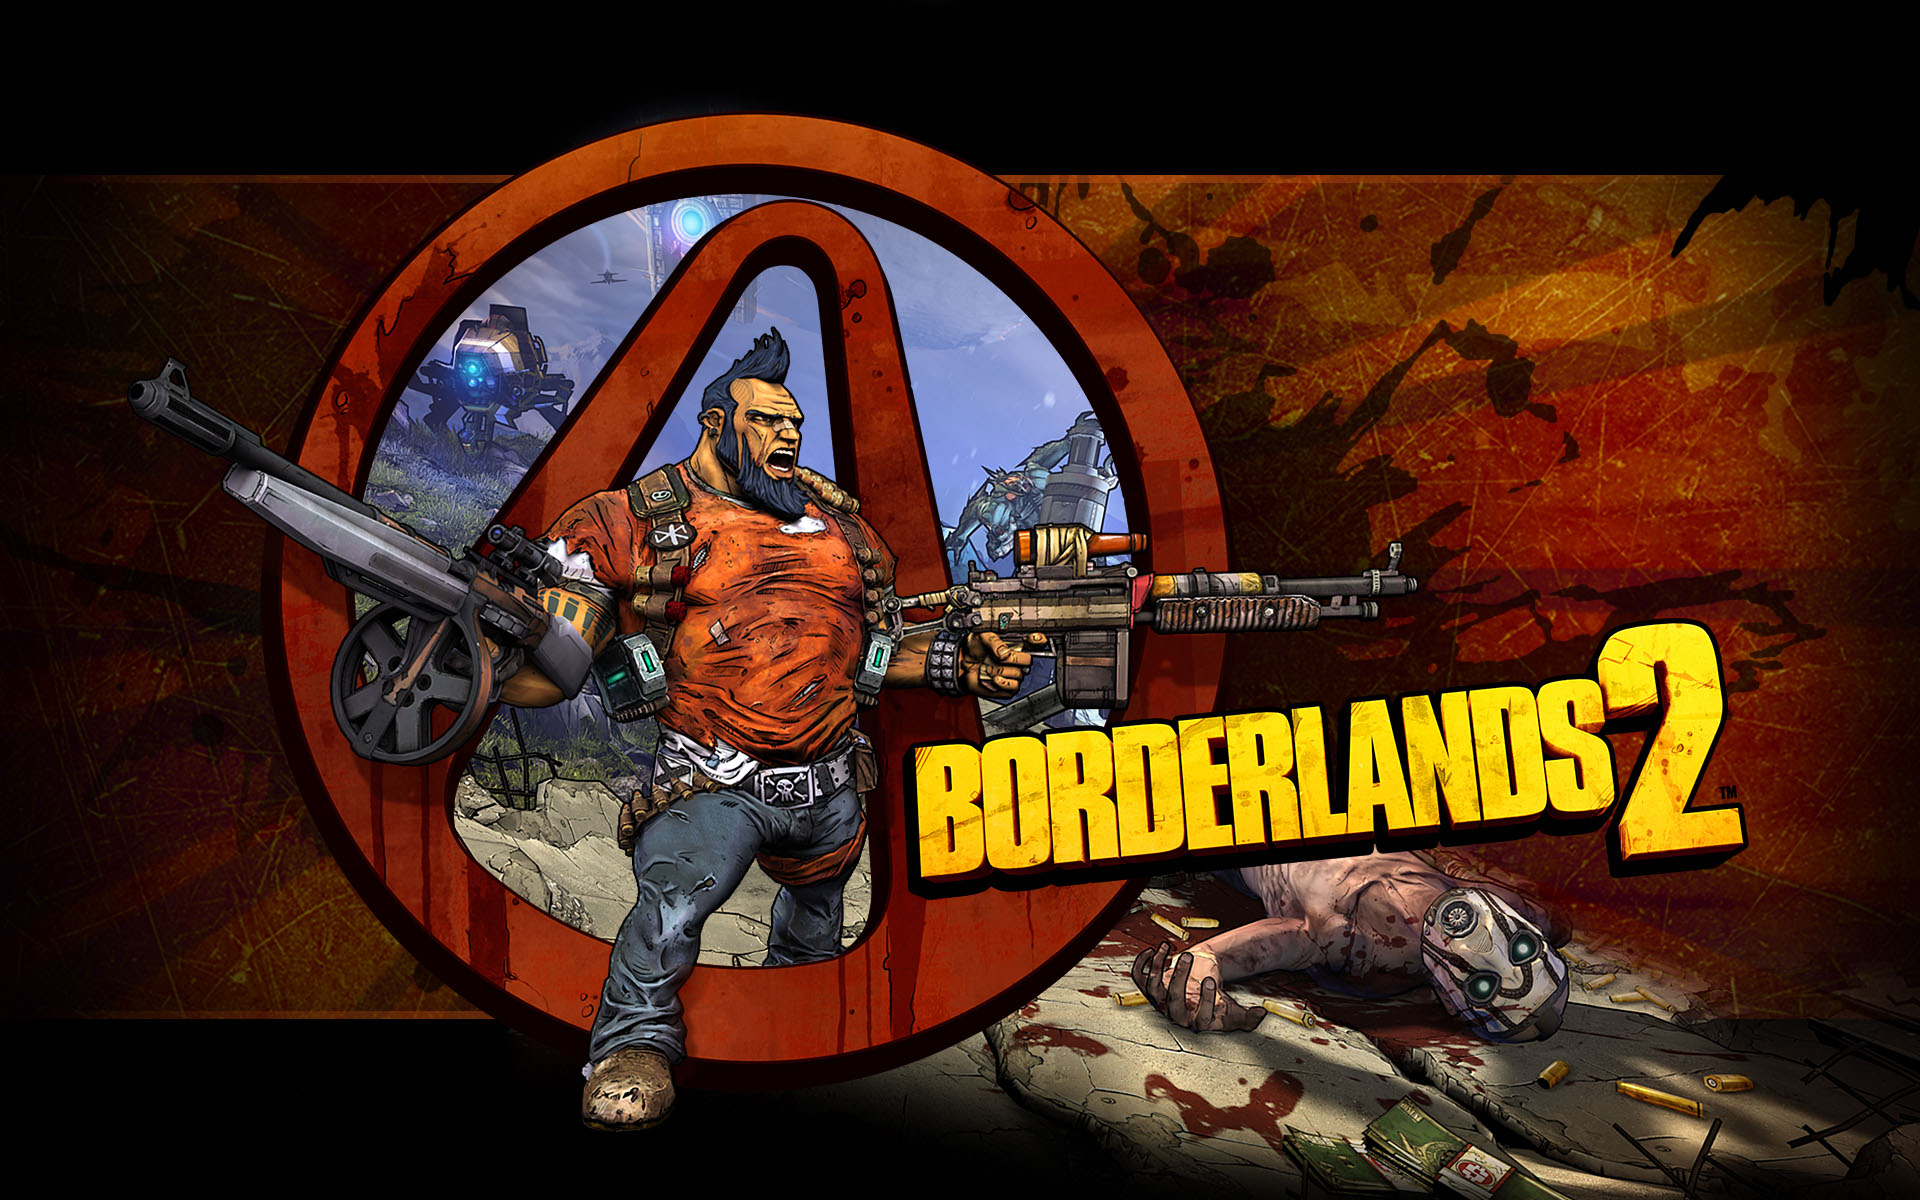 Borderlands 2 Logo Wallpaper Borderlands 2 Logo Text By Mireou On